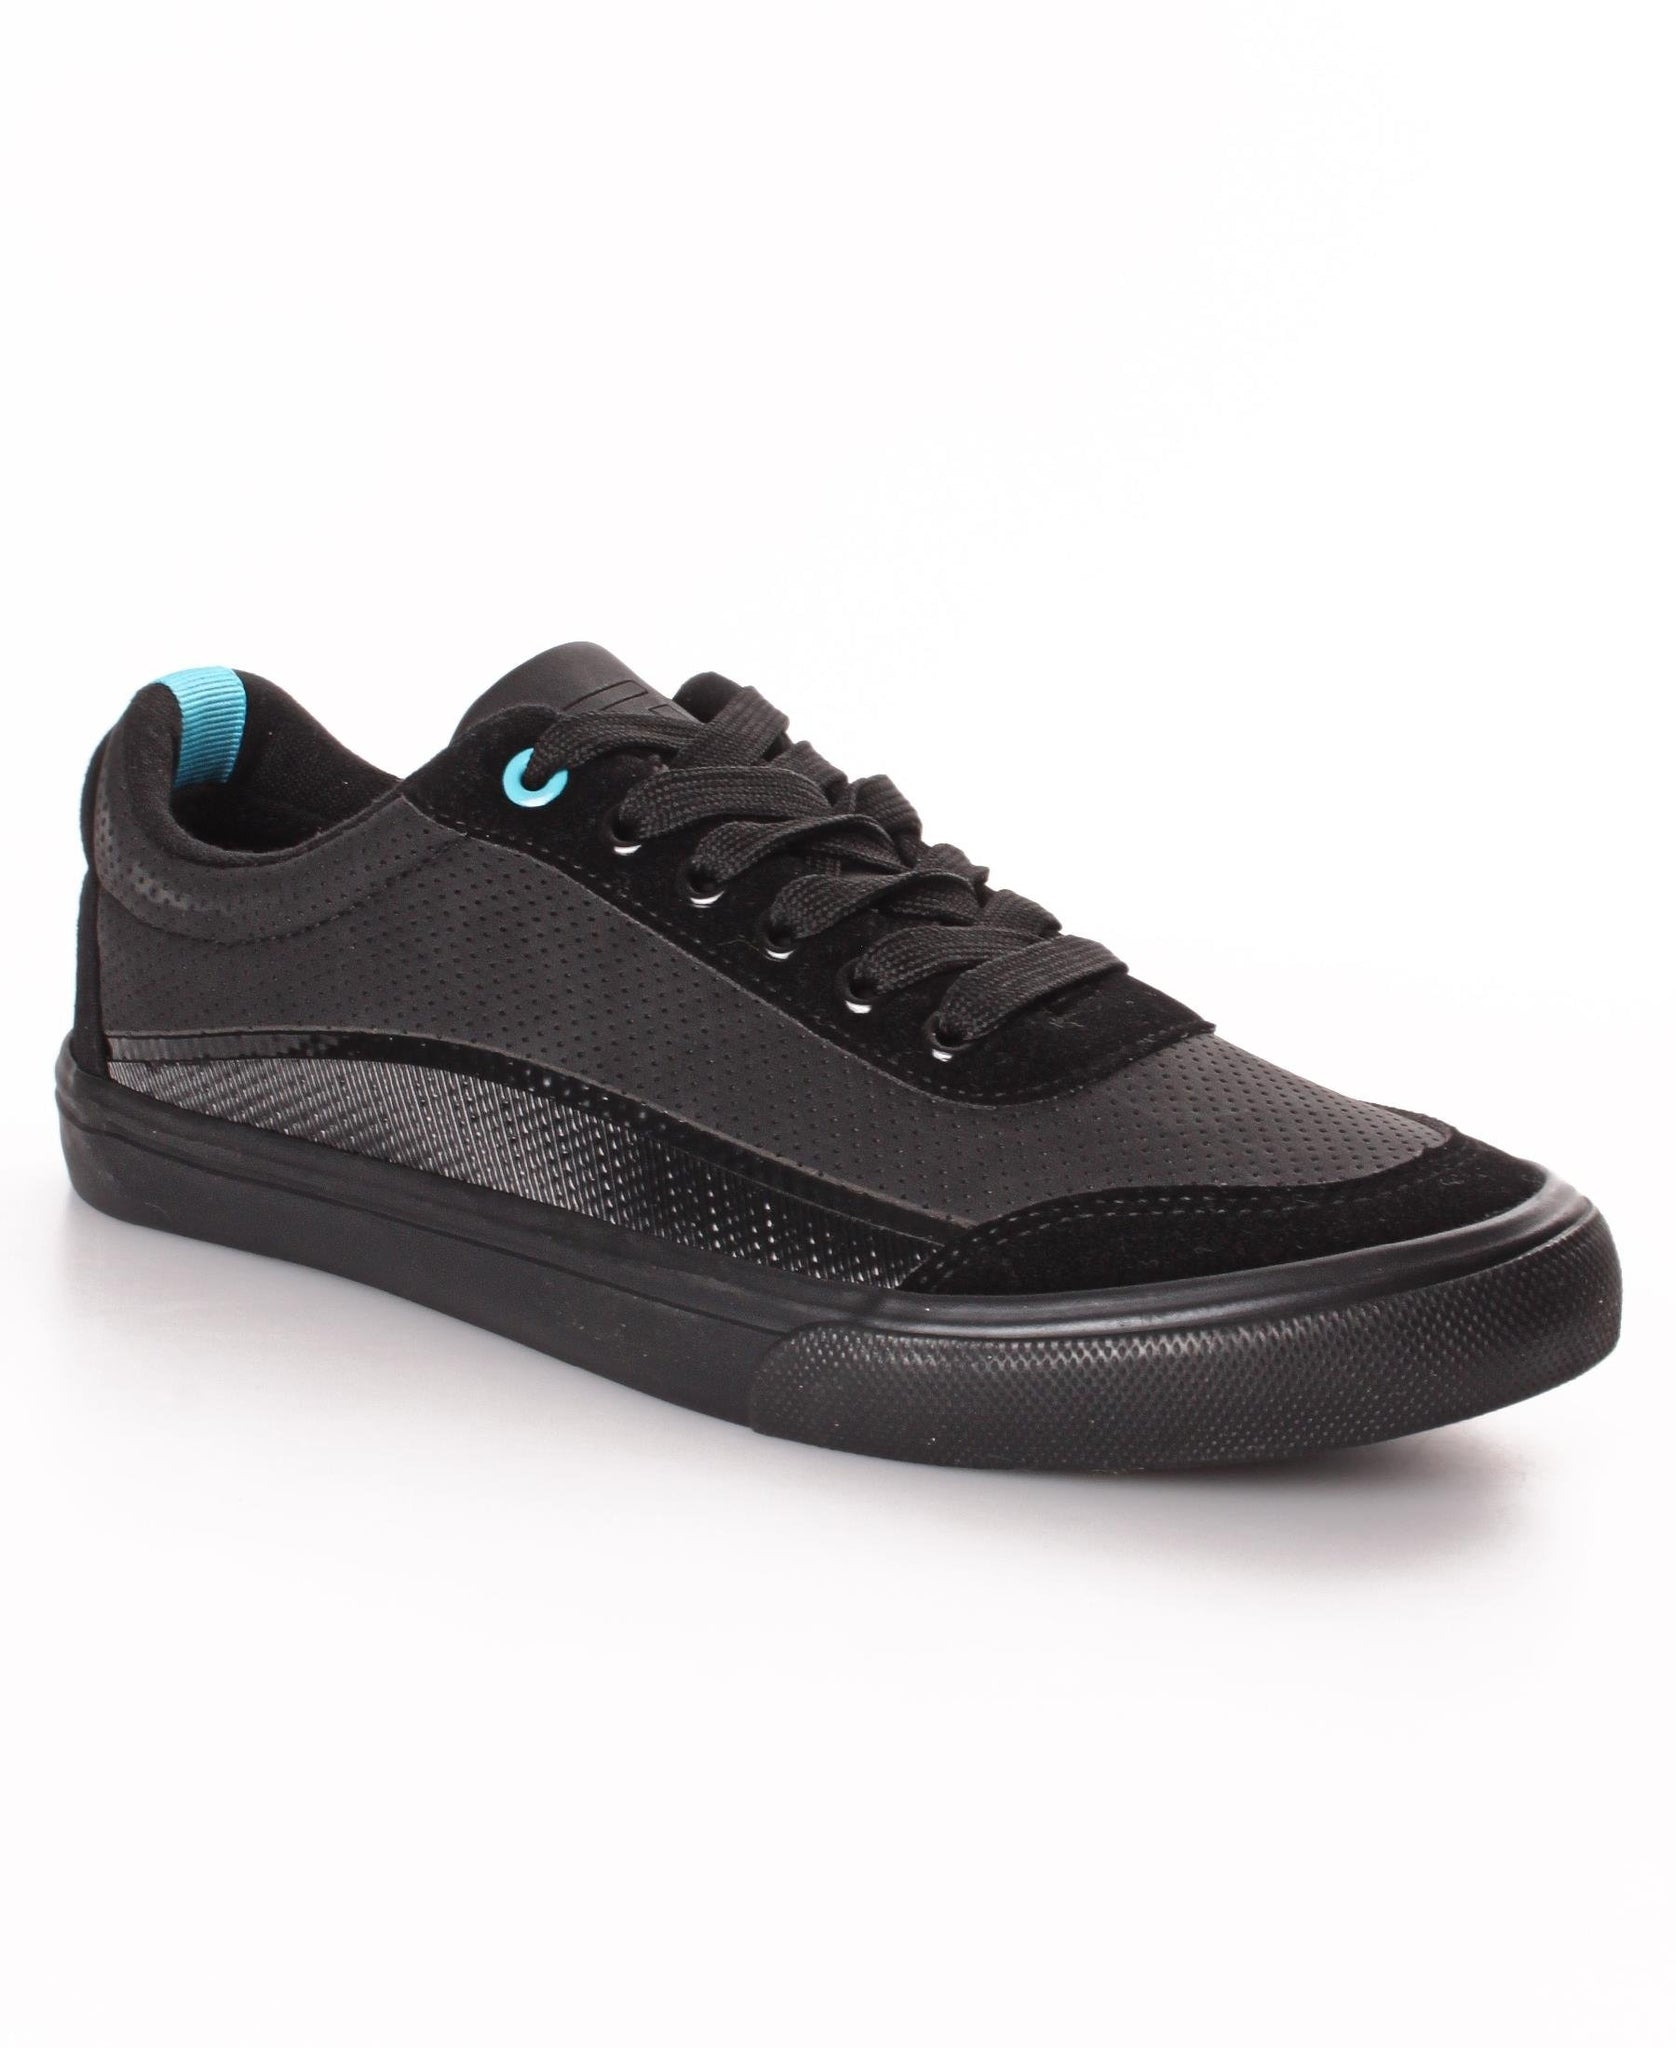 Men's Milano Sneakers - Black